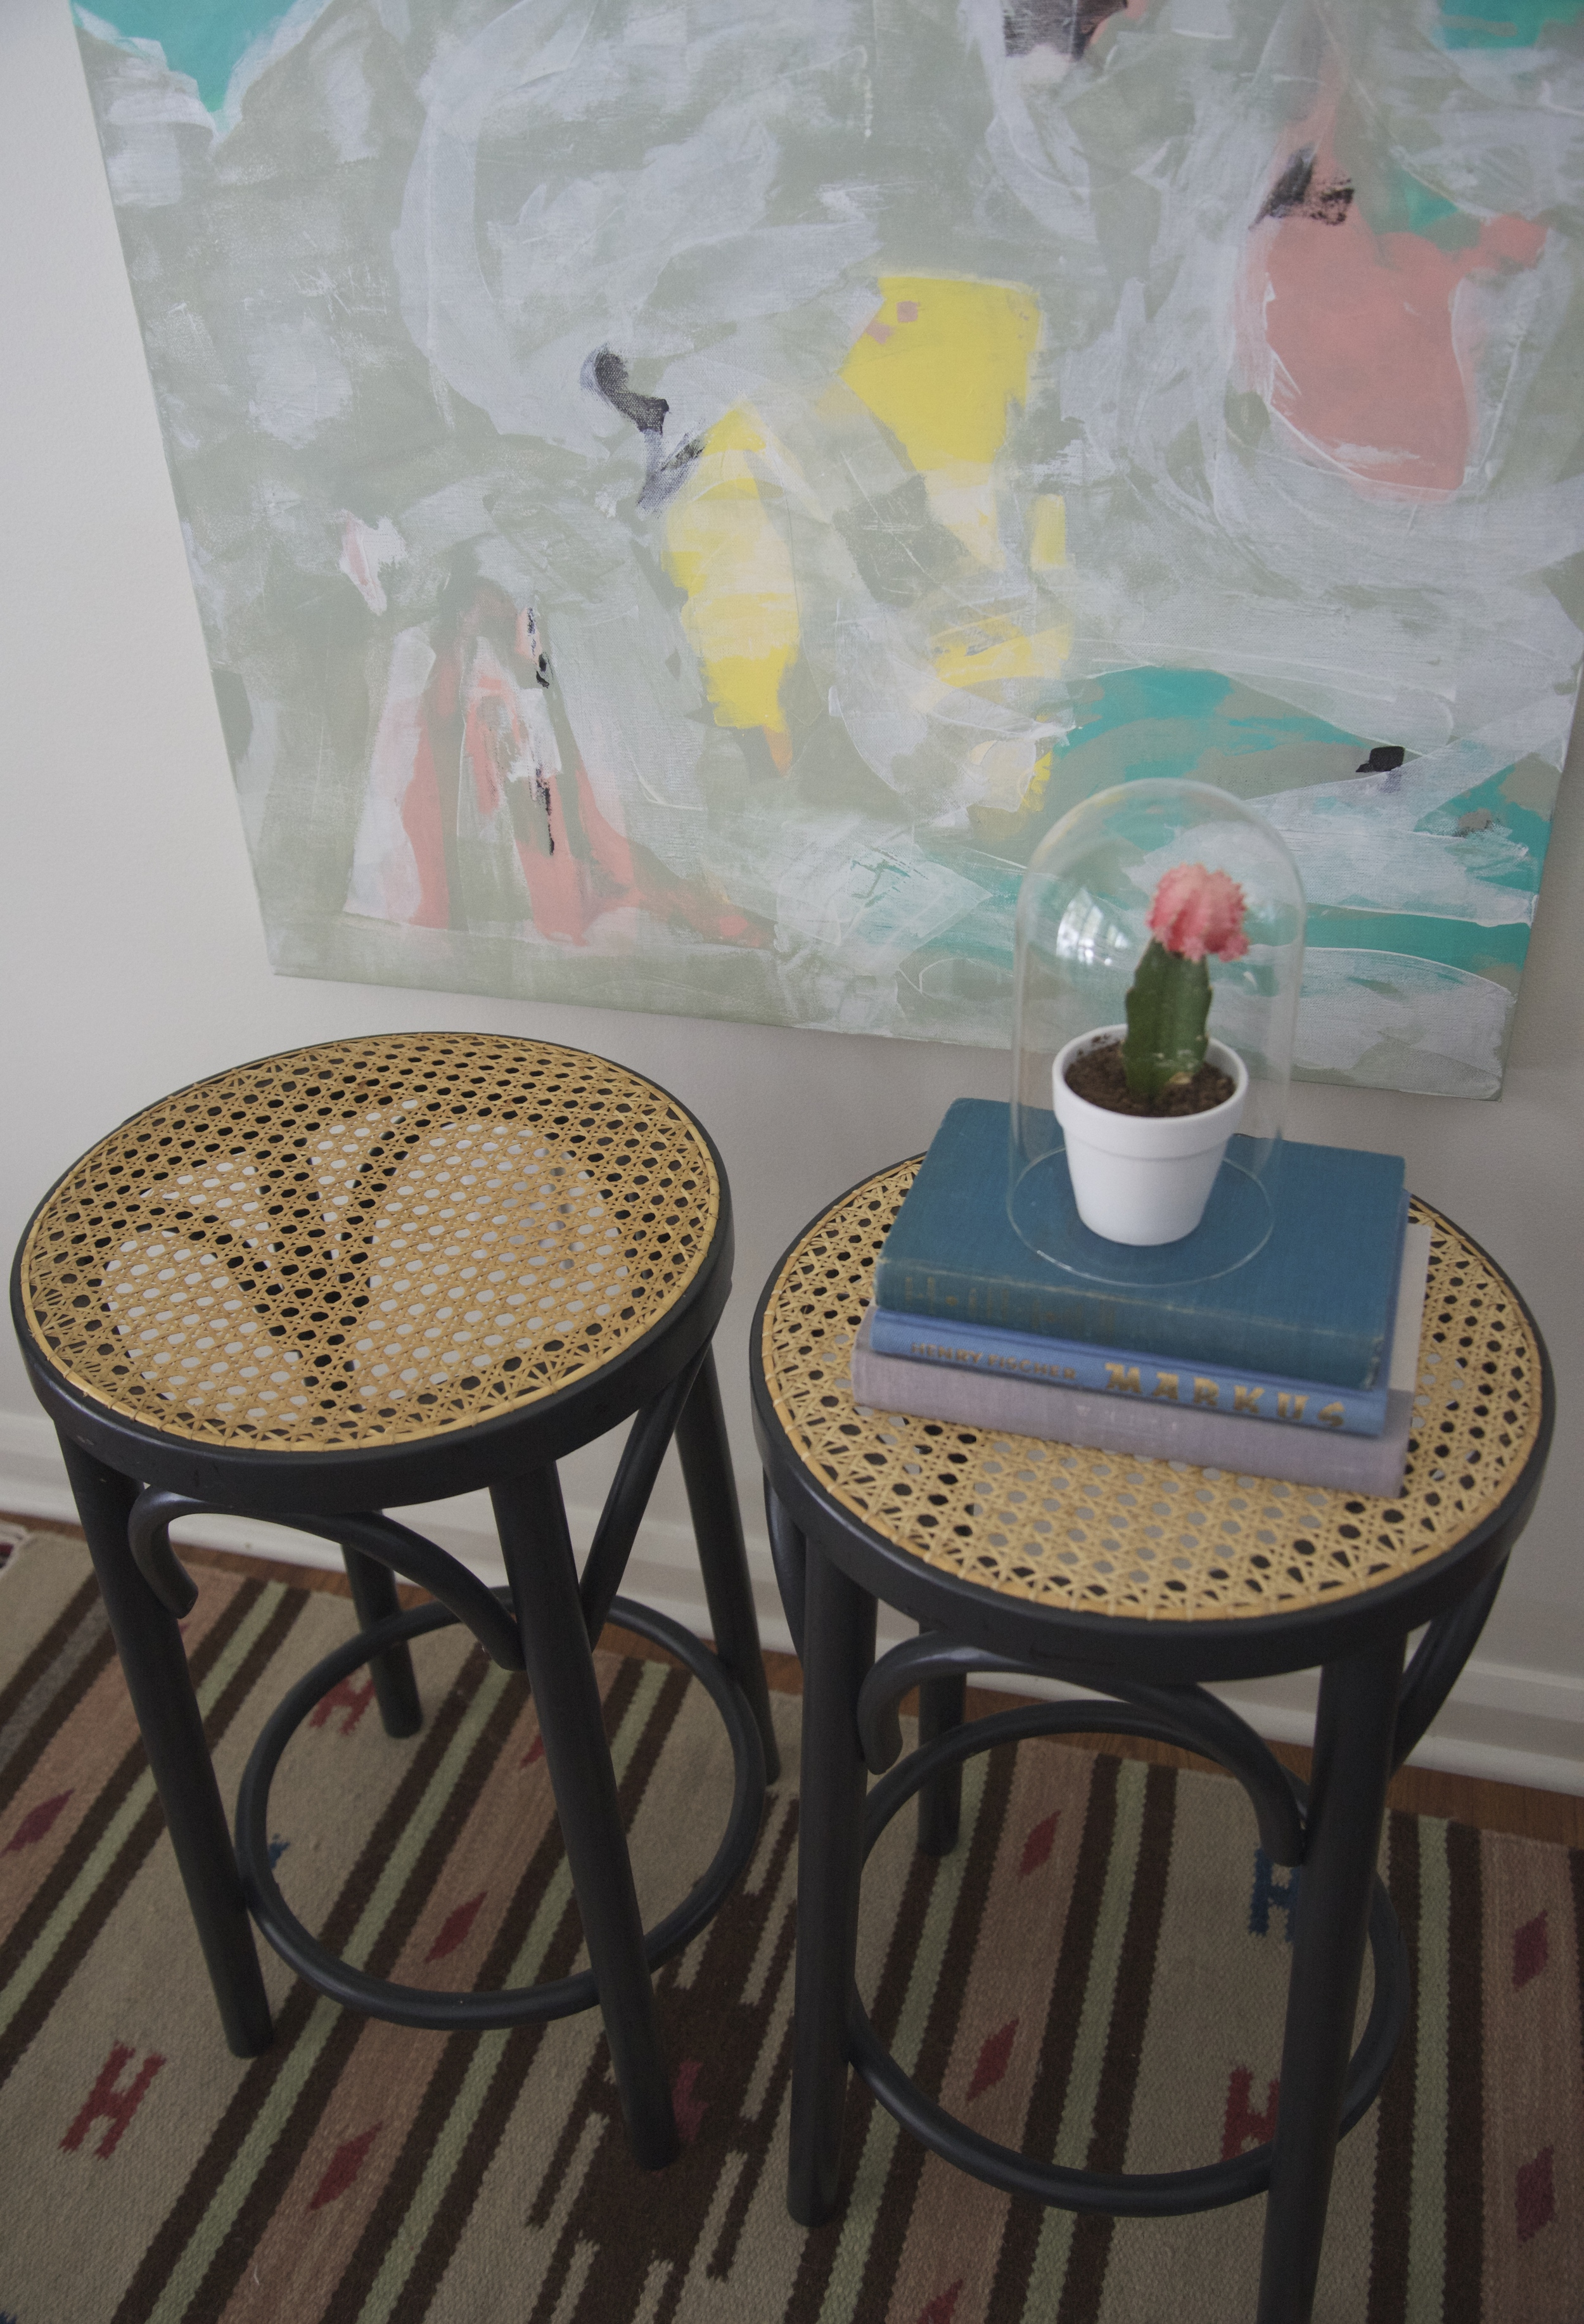 Bentwood stools...aren't they pretty?